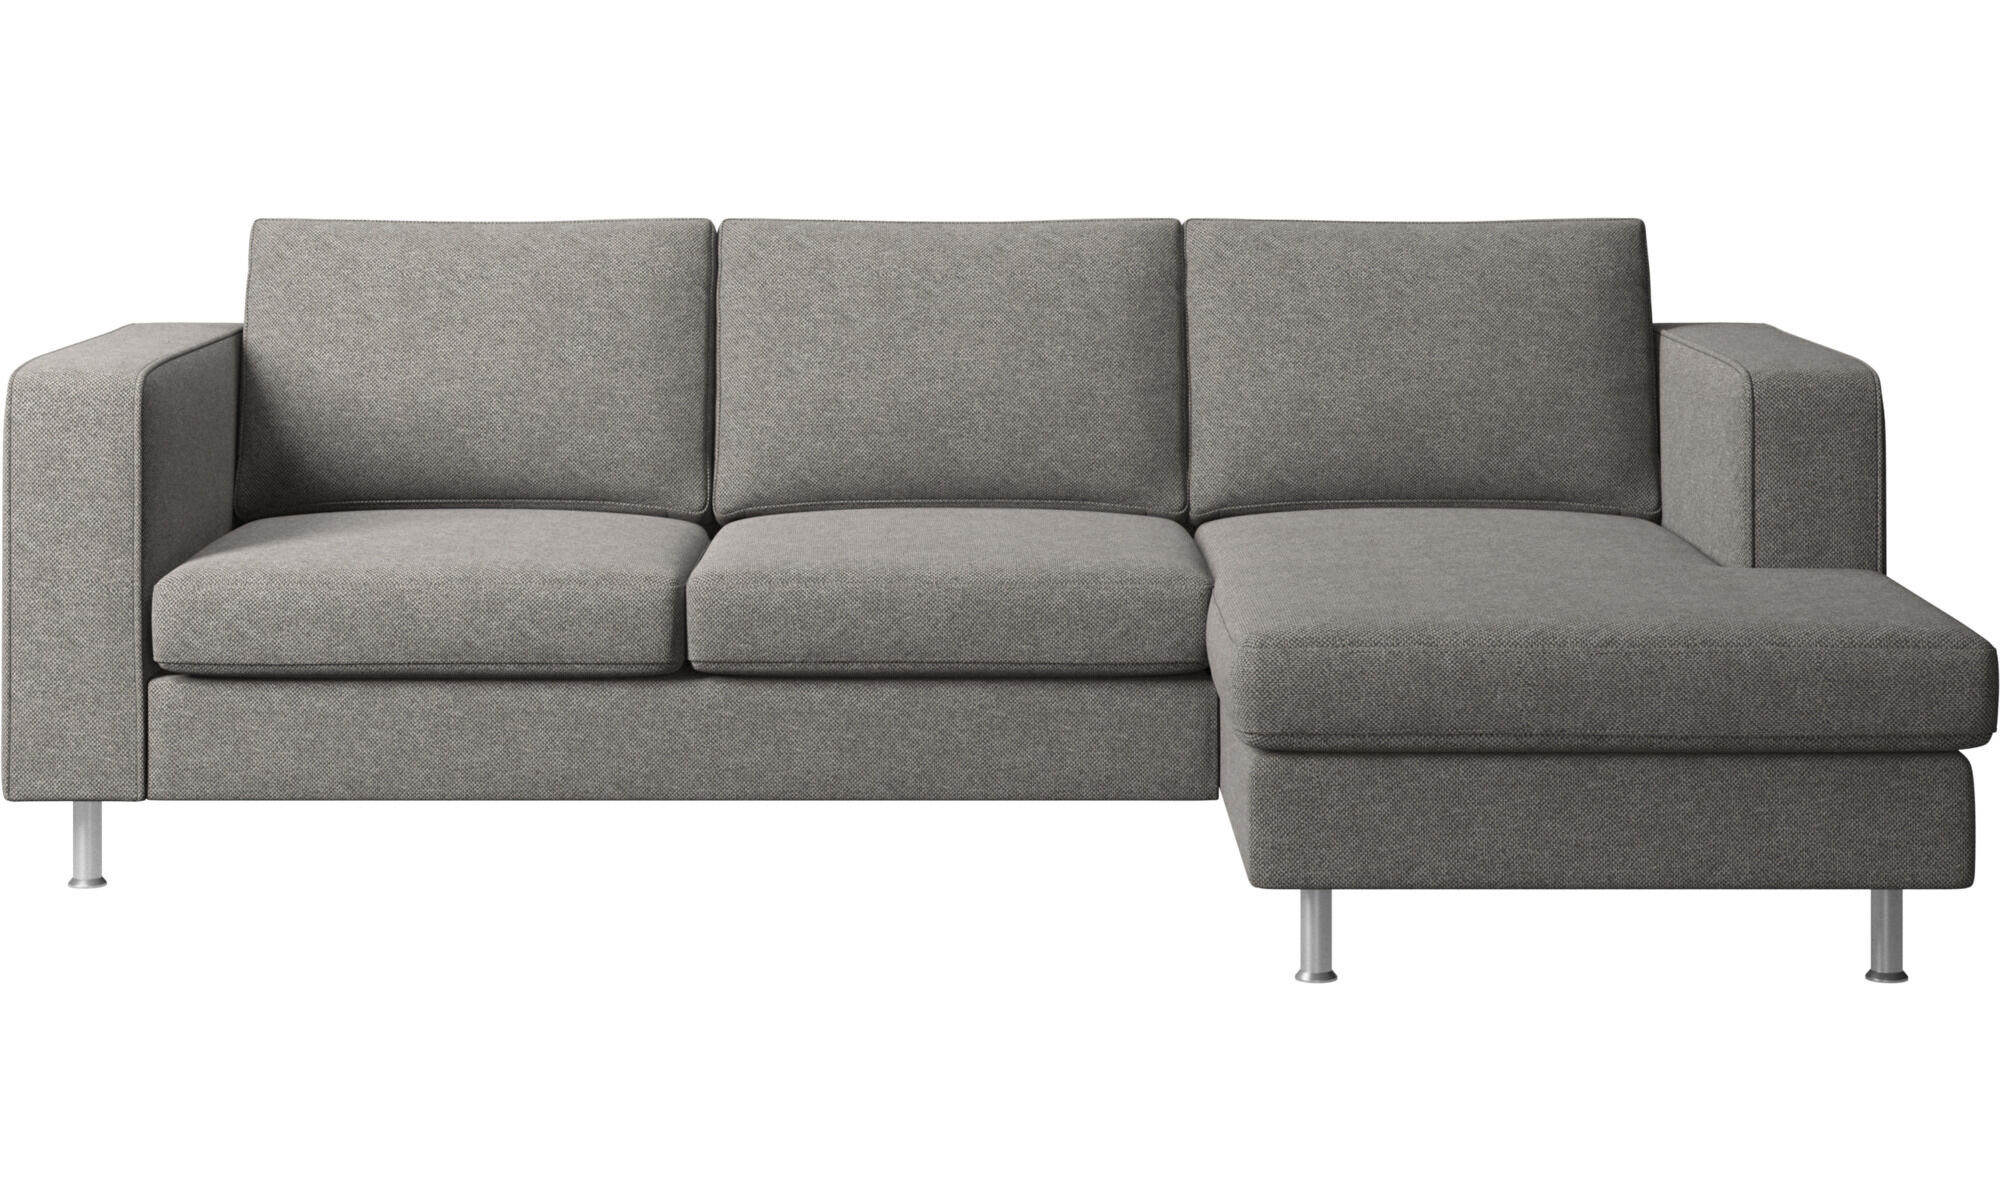 modern chaise longue sofas quality from boconcept rh boconcept com cheap chaise lounge sofa bed buy chaise lounge couch